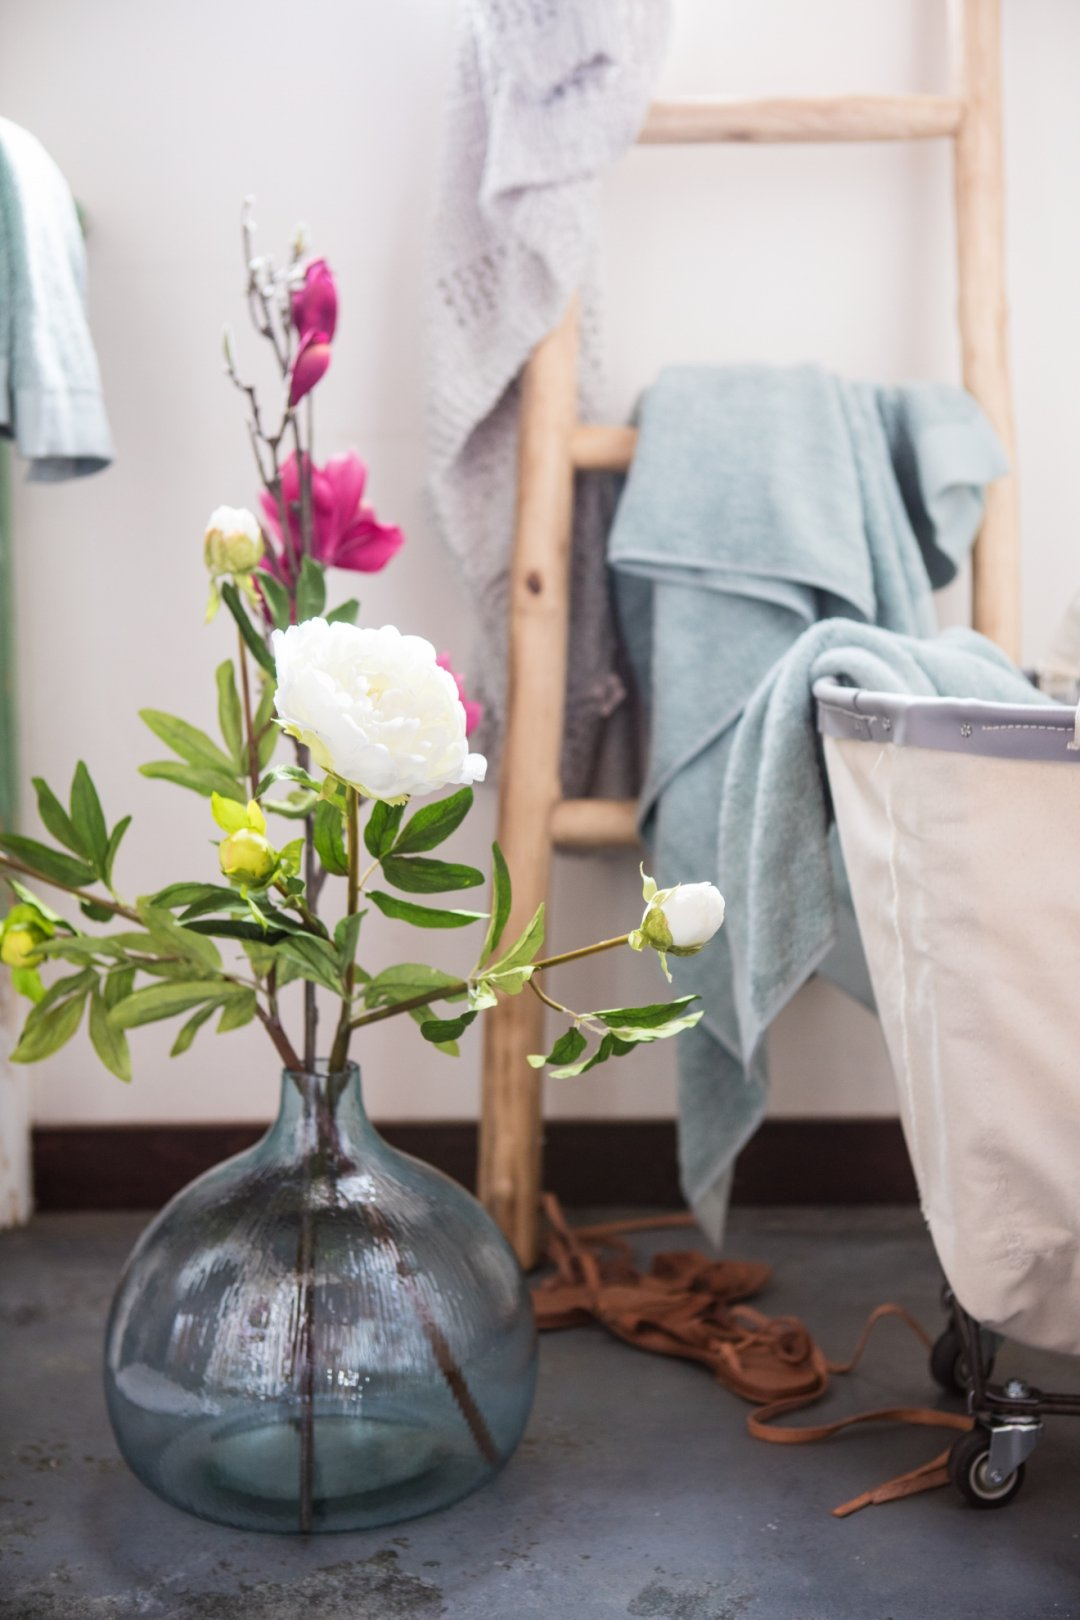 Flowers in blue vase next to ladder with towels